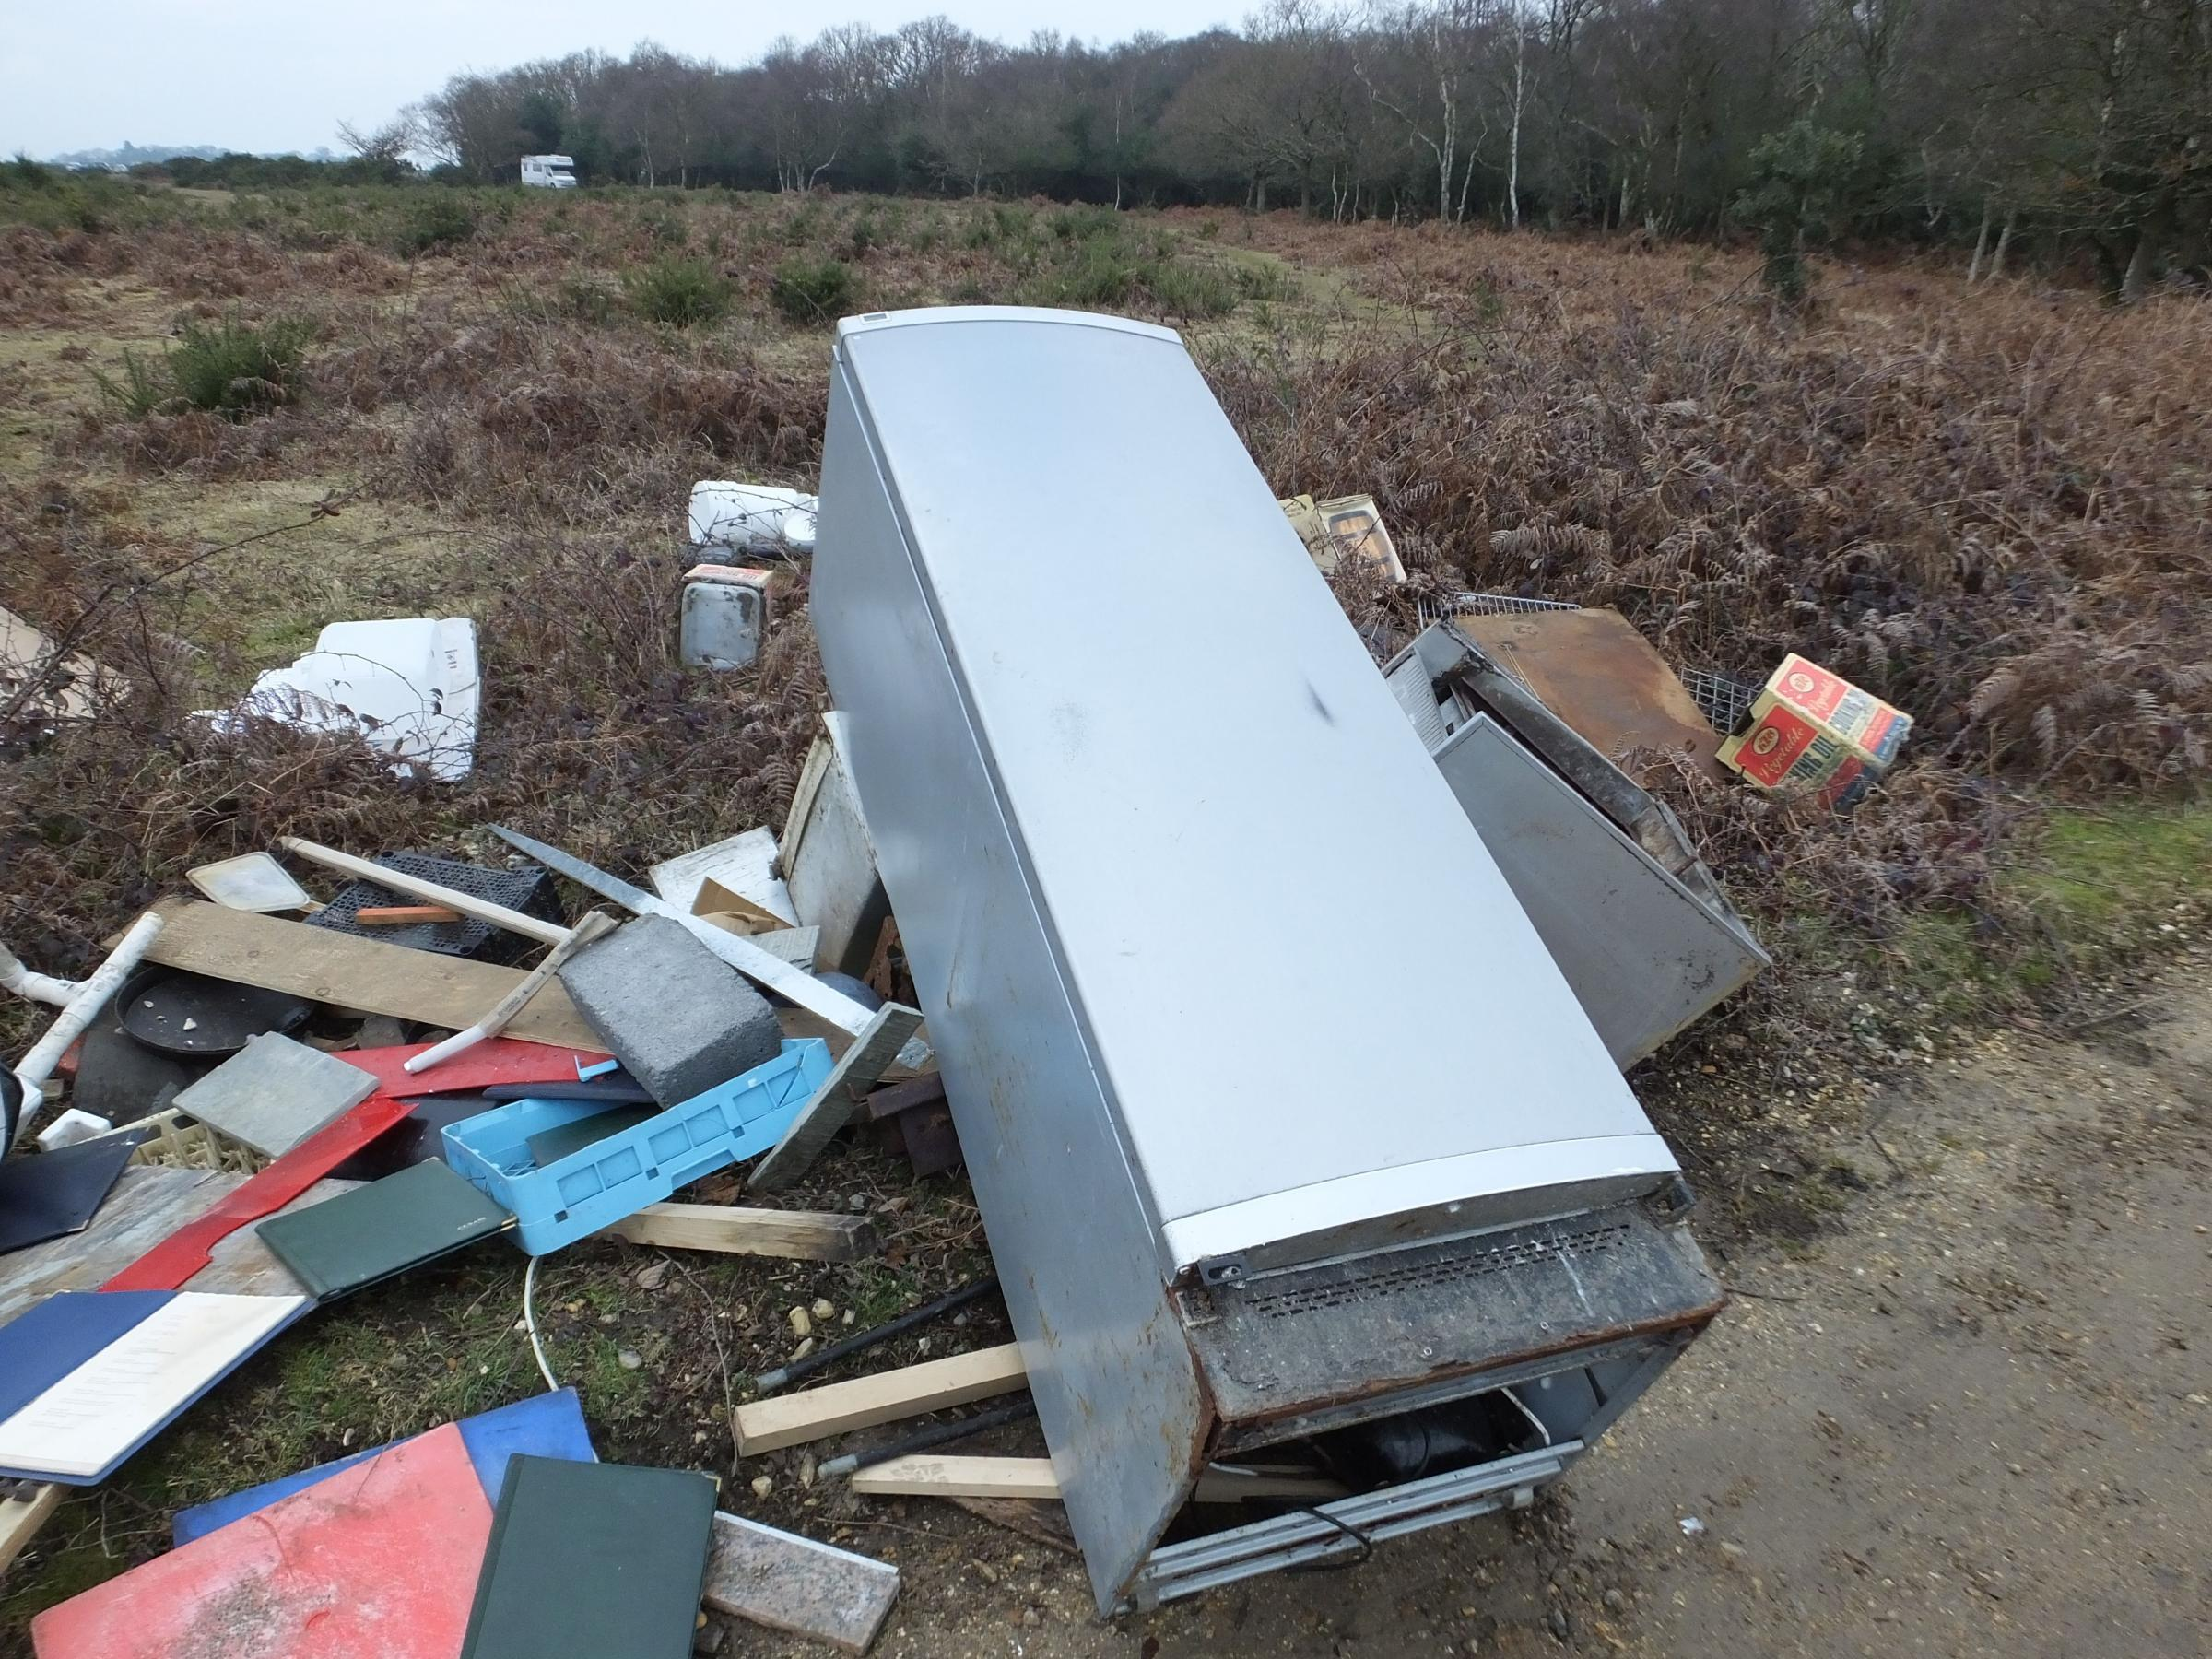 BLIGHT: Fly-tipping in the New Forest